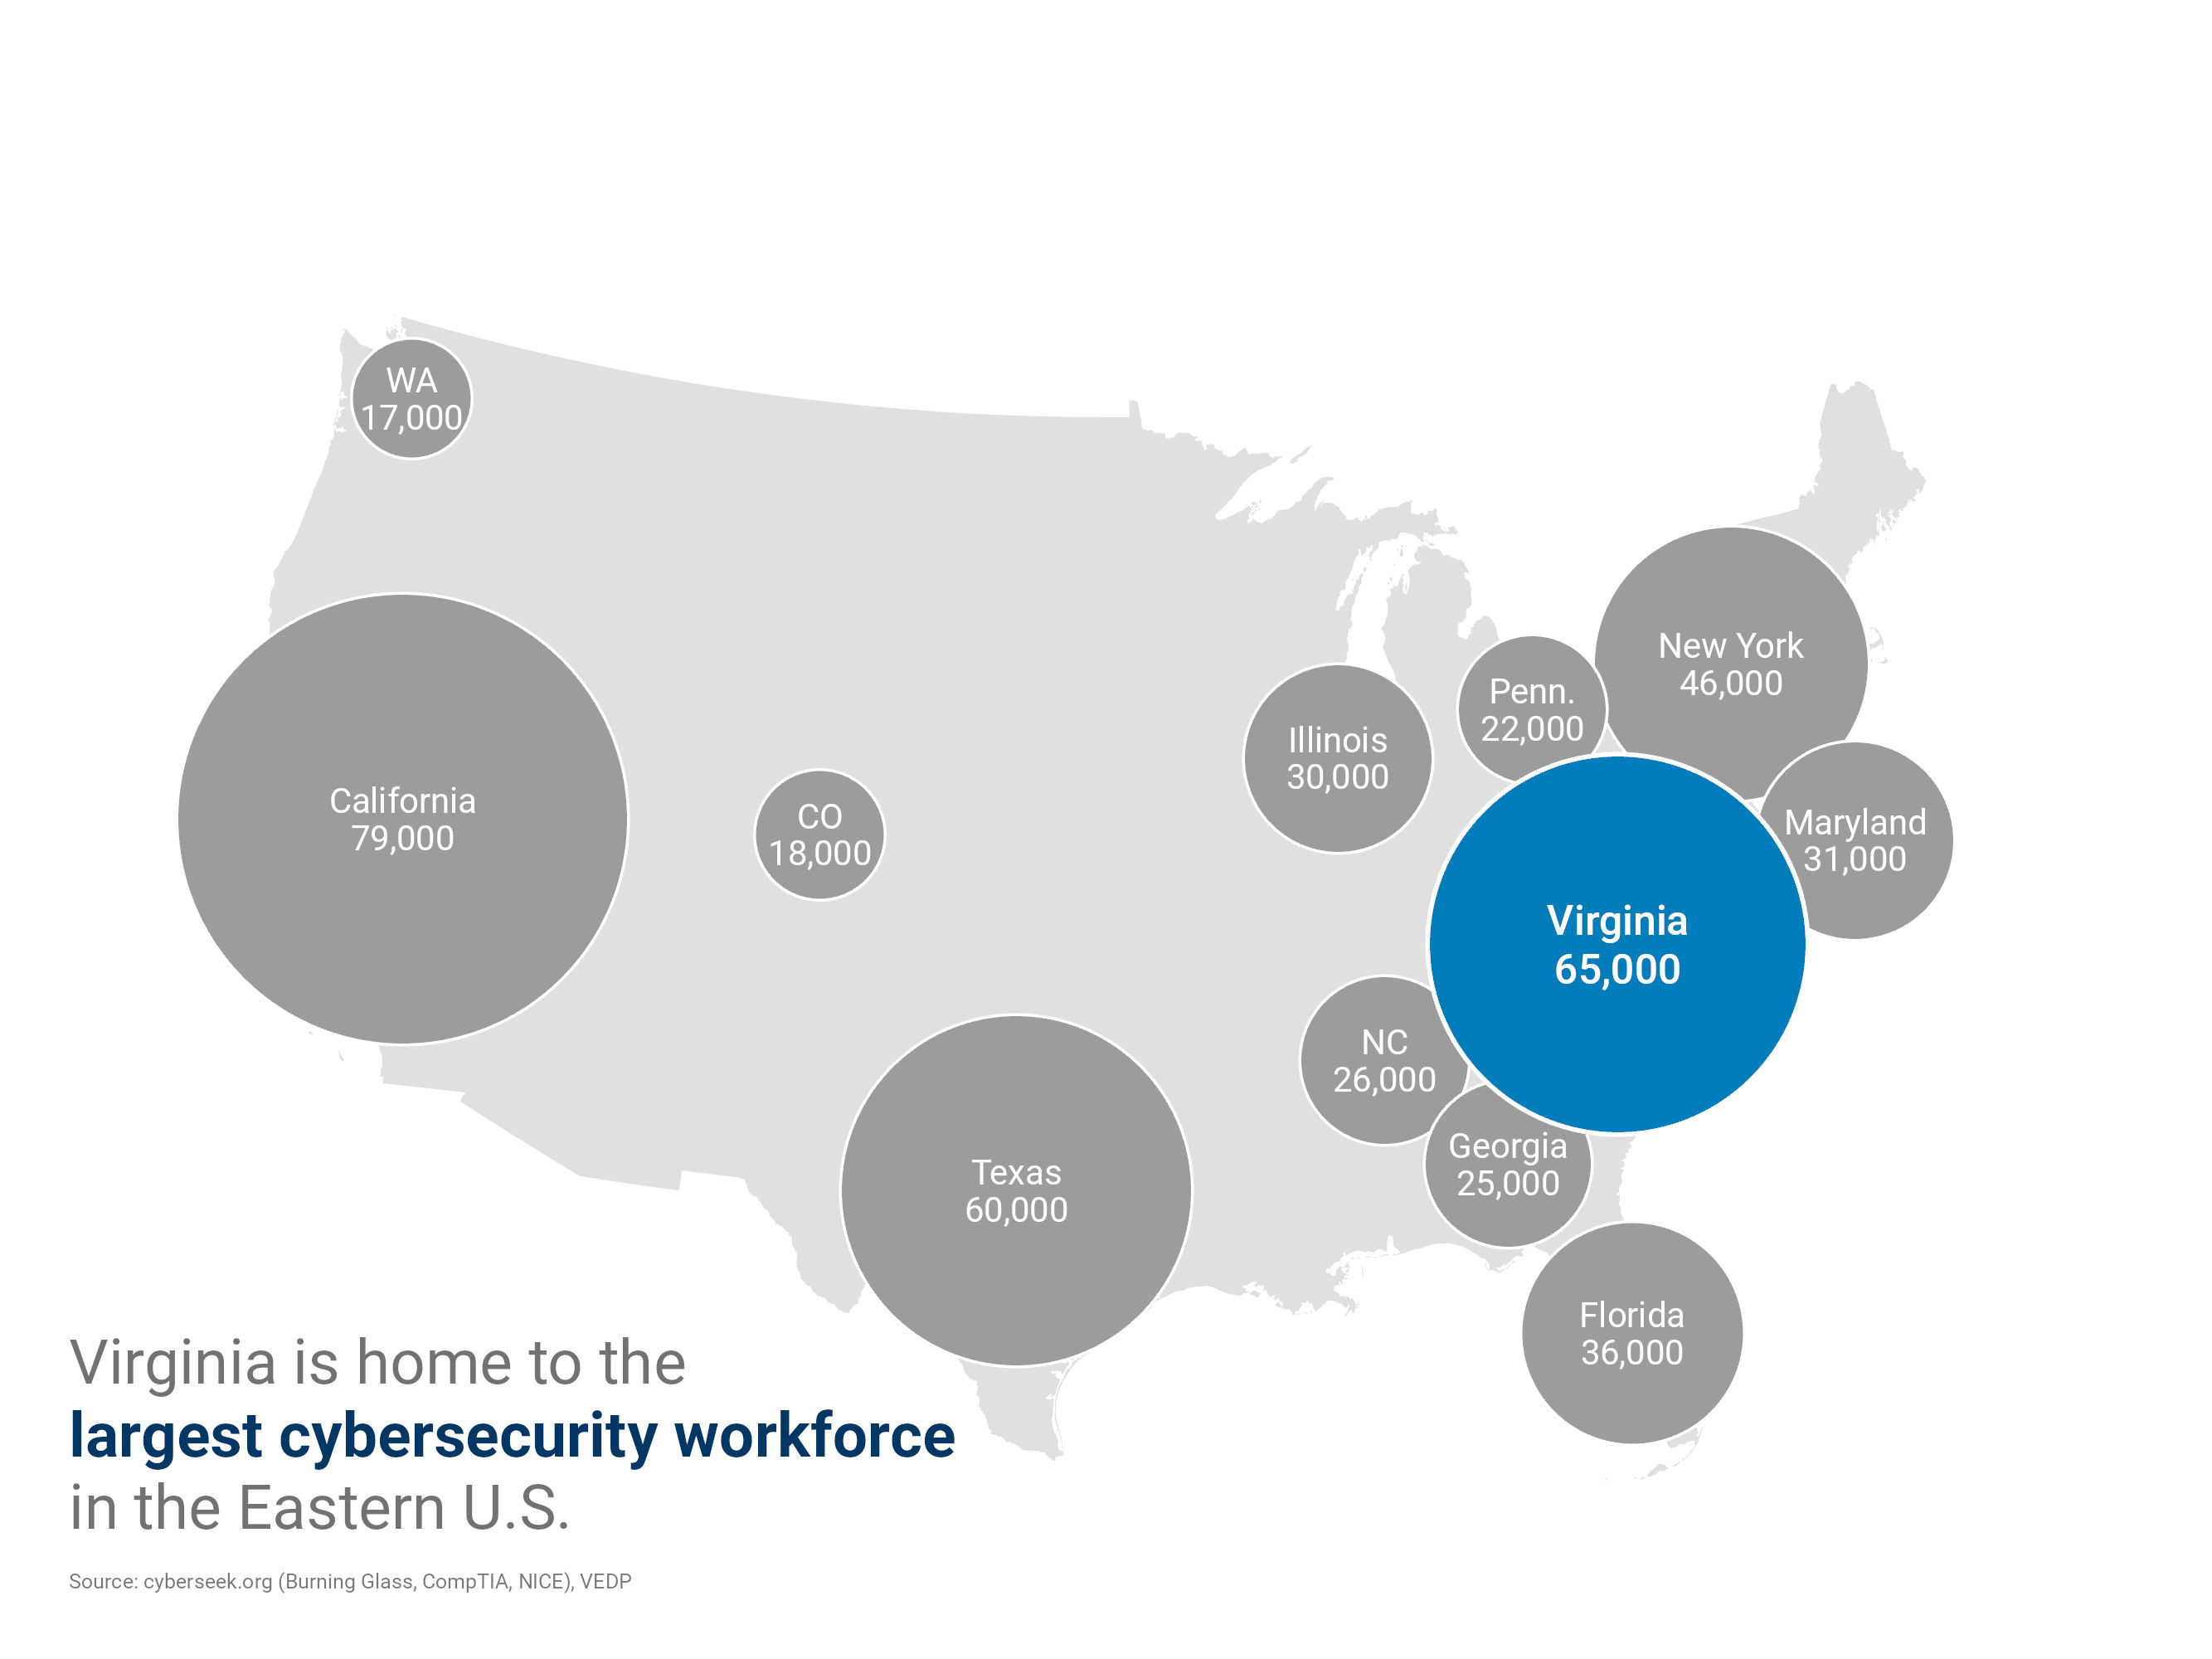 Virginia is home to the largest cybersecurity workforce in the Eastern U.S.